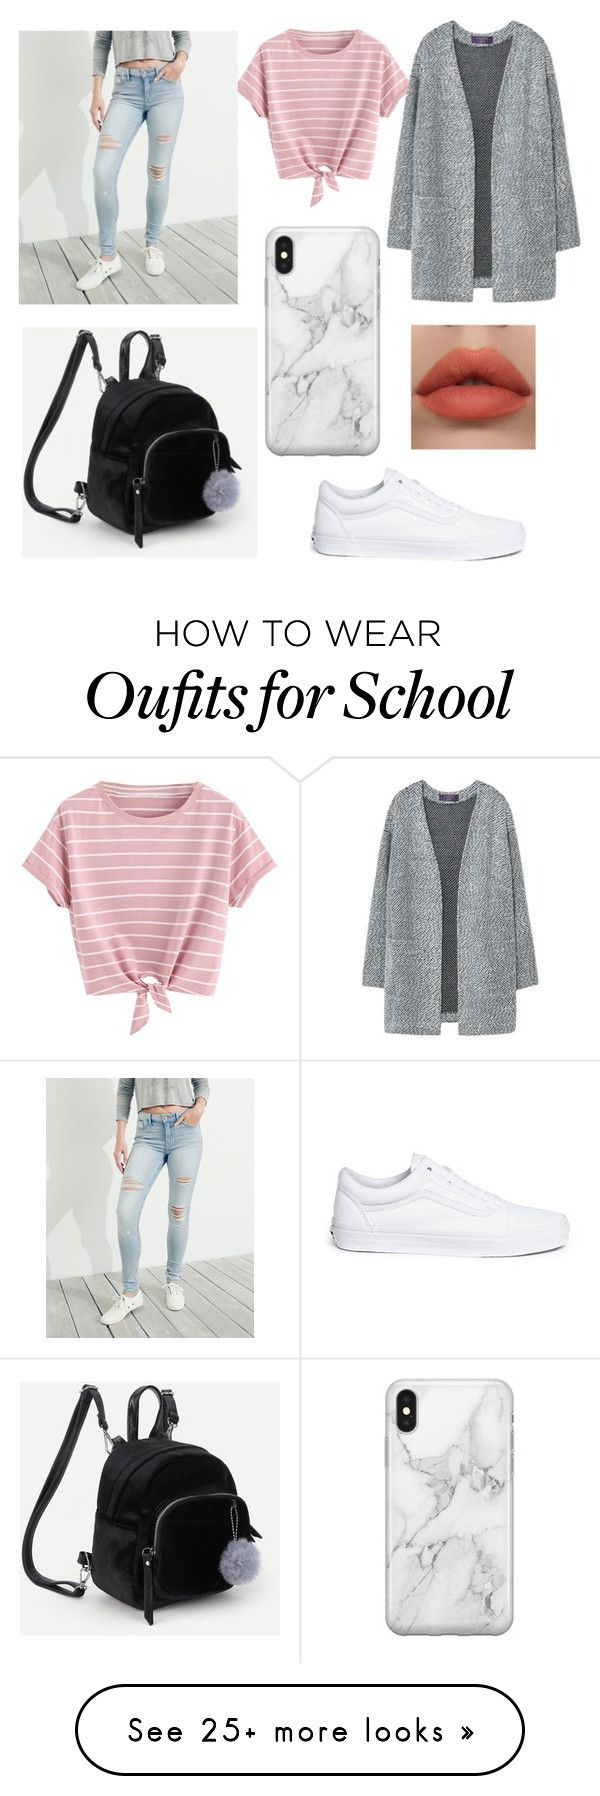 """School"" by jennyvns on Polyvore featuring MANGO, Hollister Co., Vans and Recover"